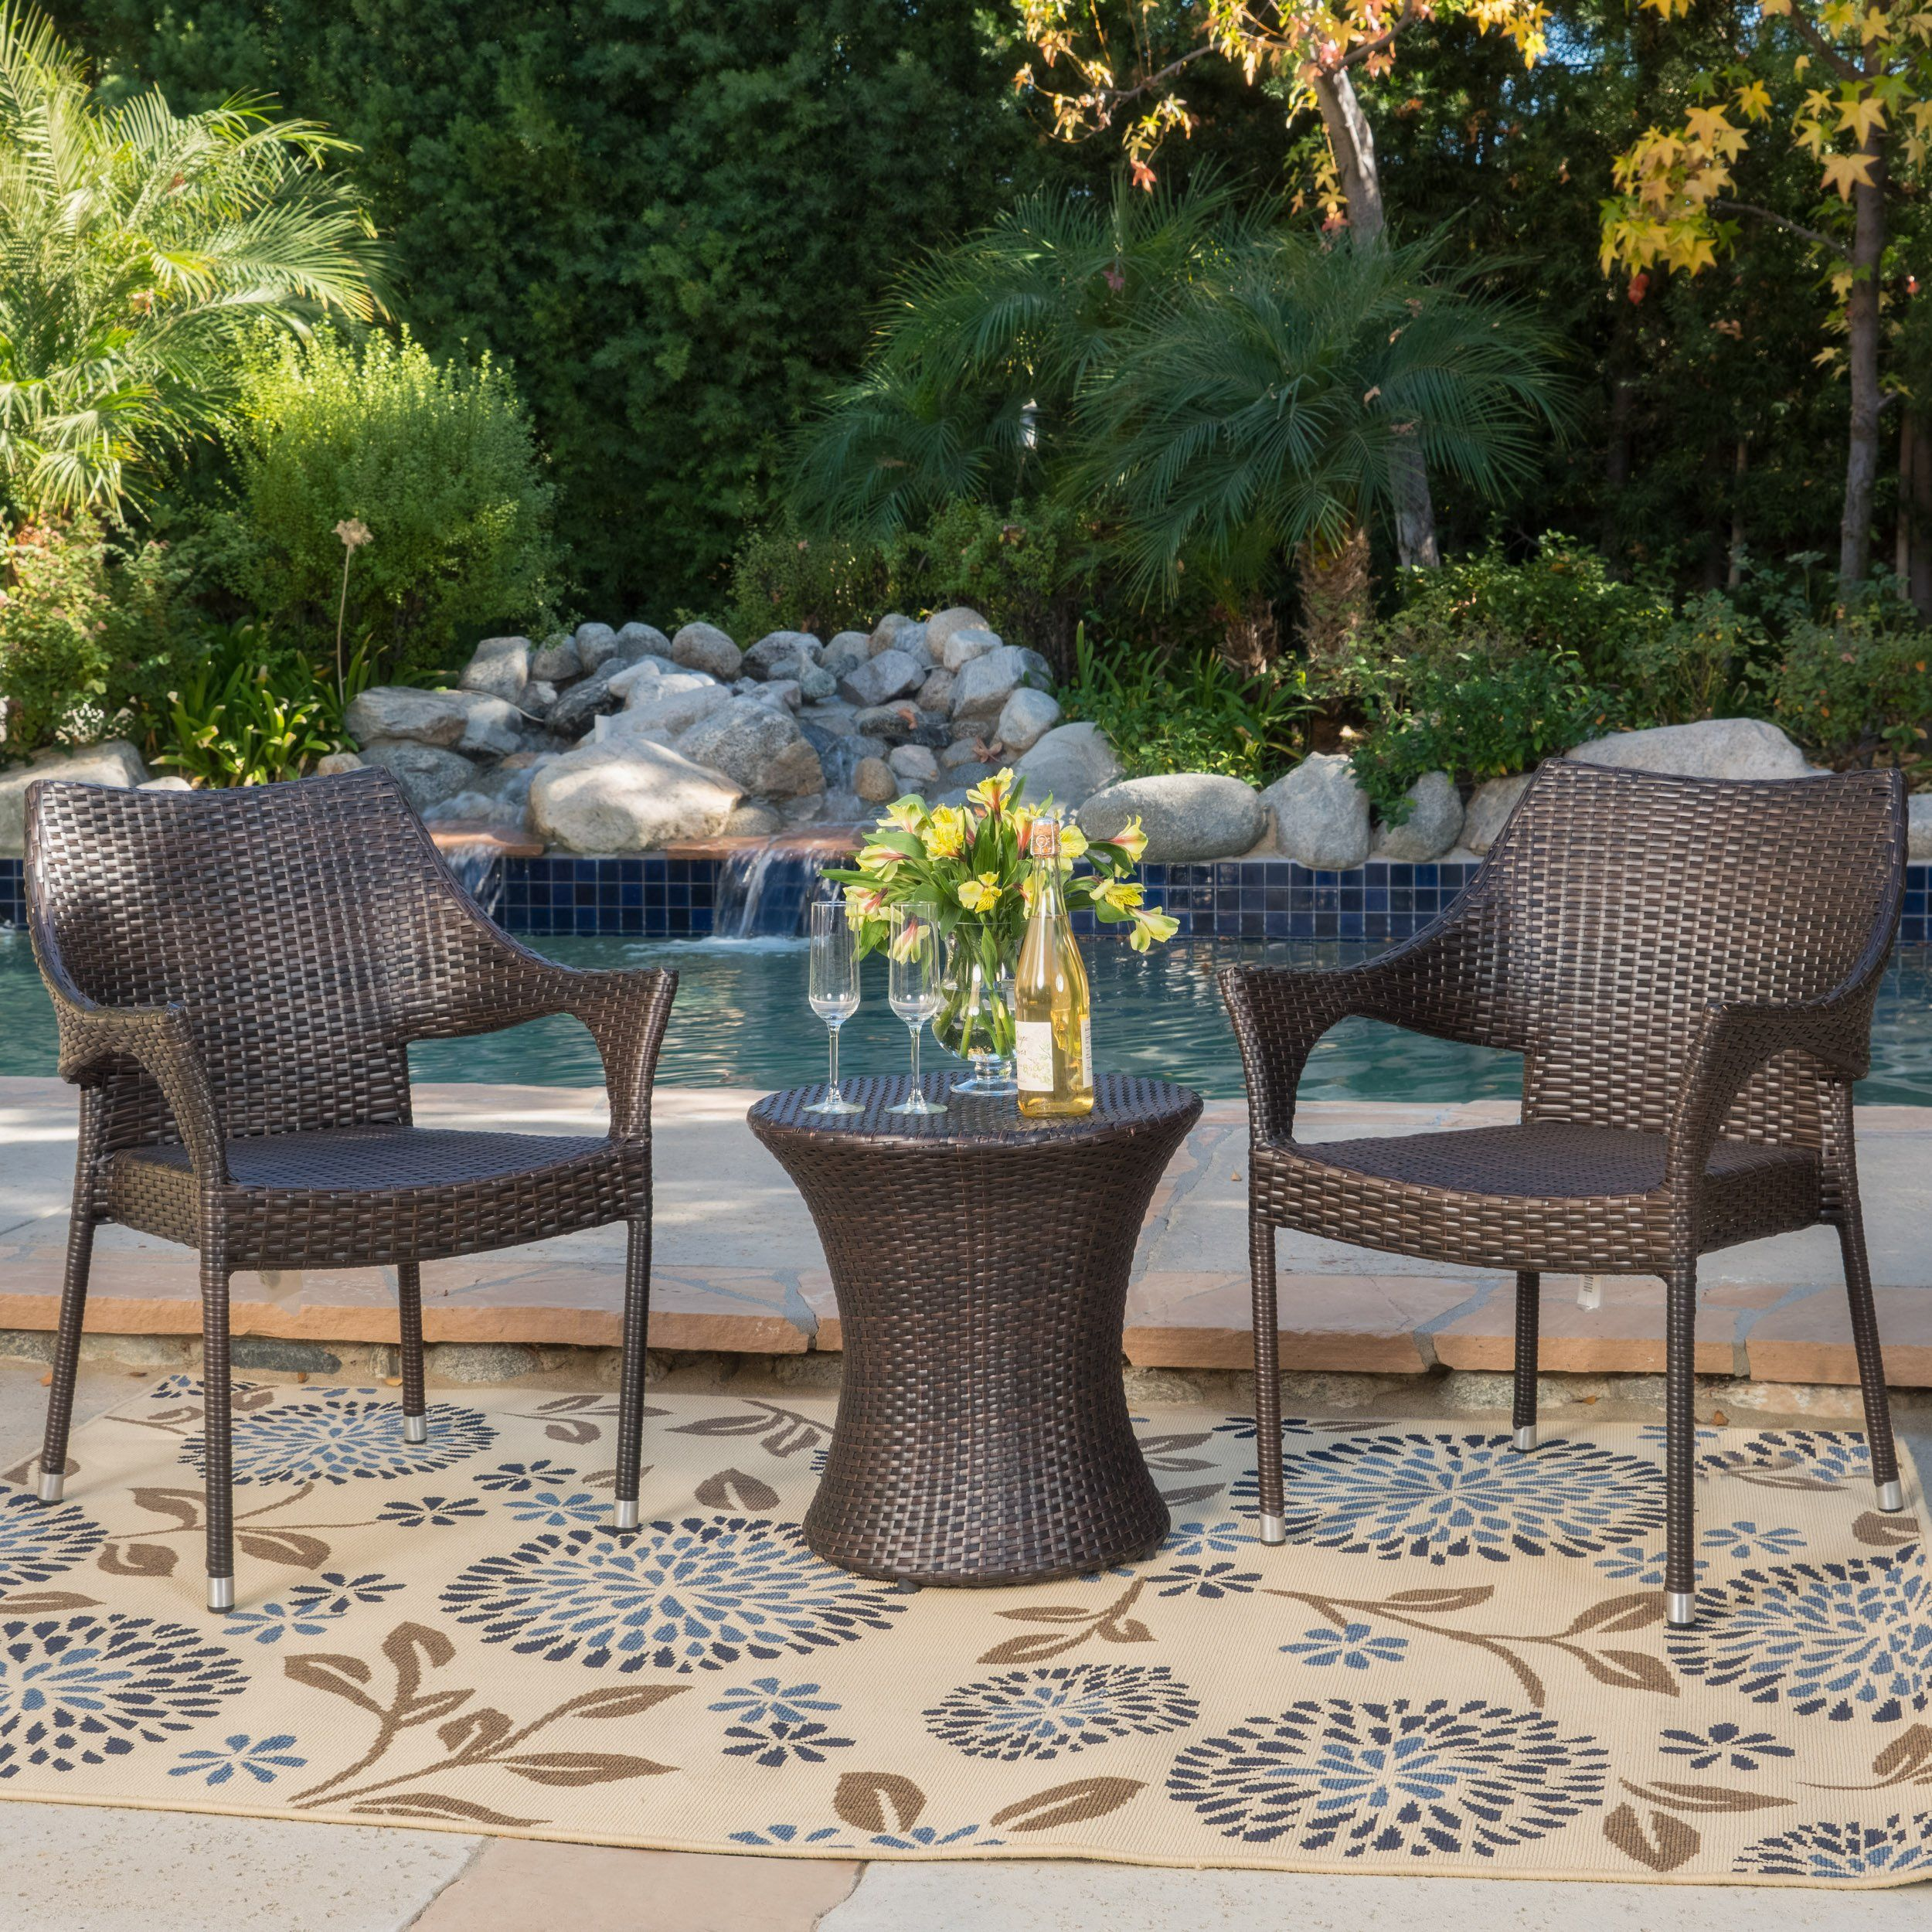 Tahitian Patio Furniture 3 Piece Outdoor Wicker Stacking Chair Conversation Chat Set Brown